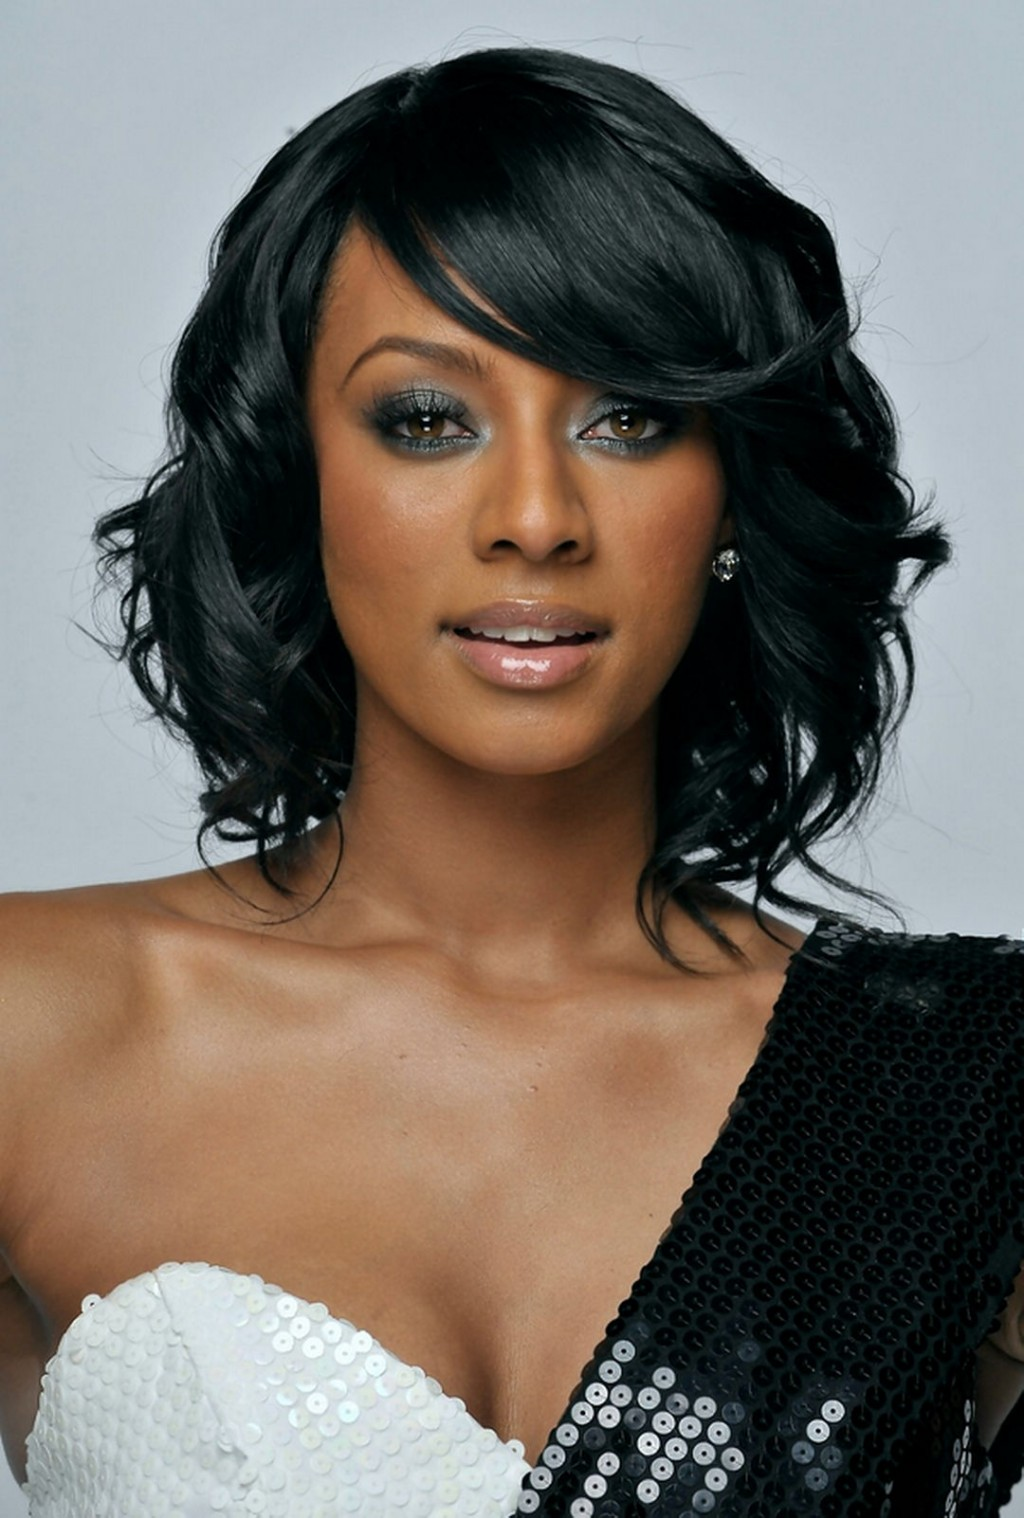 Bob Layered Hairstyles For Women African American Wallpaper Woman Fashion